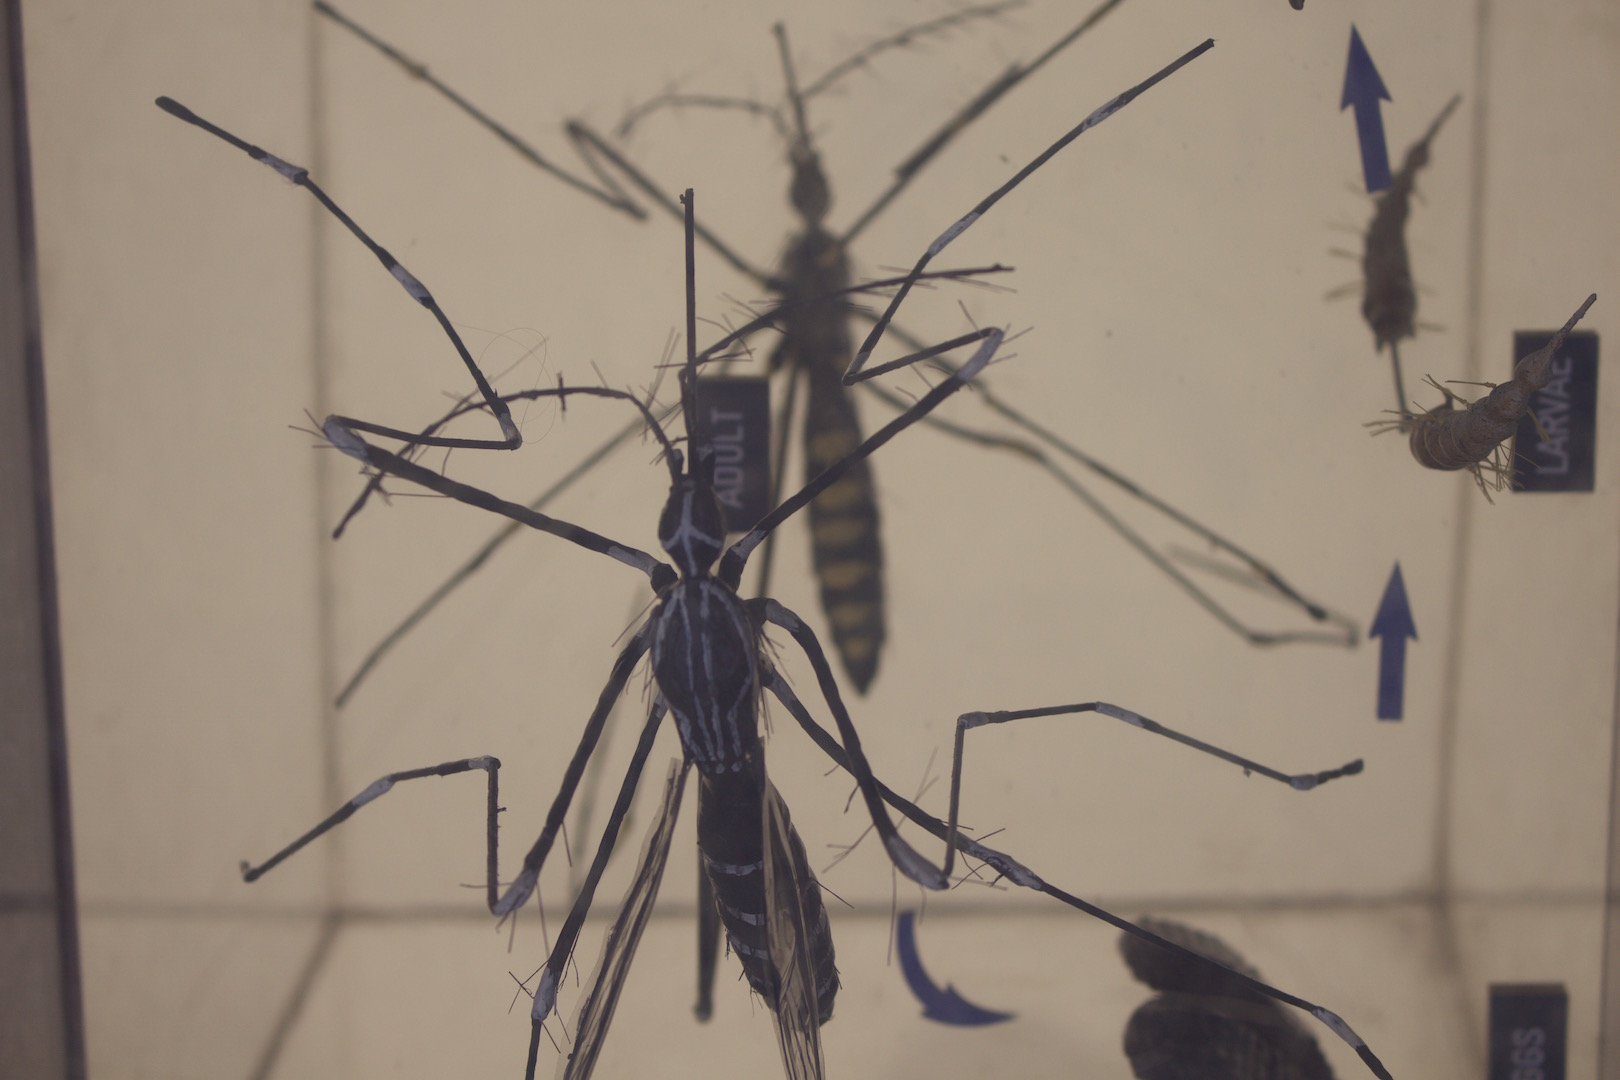 A model of an Aedes mosquito and its larvae used in public education programmes about dengue in Malaysia where it affected record numbers of people in 2015